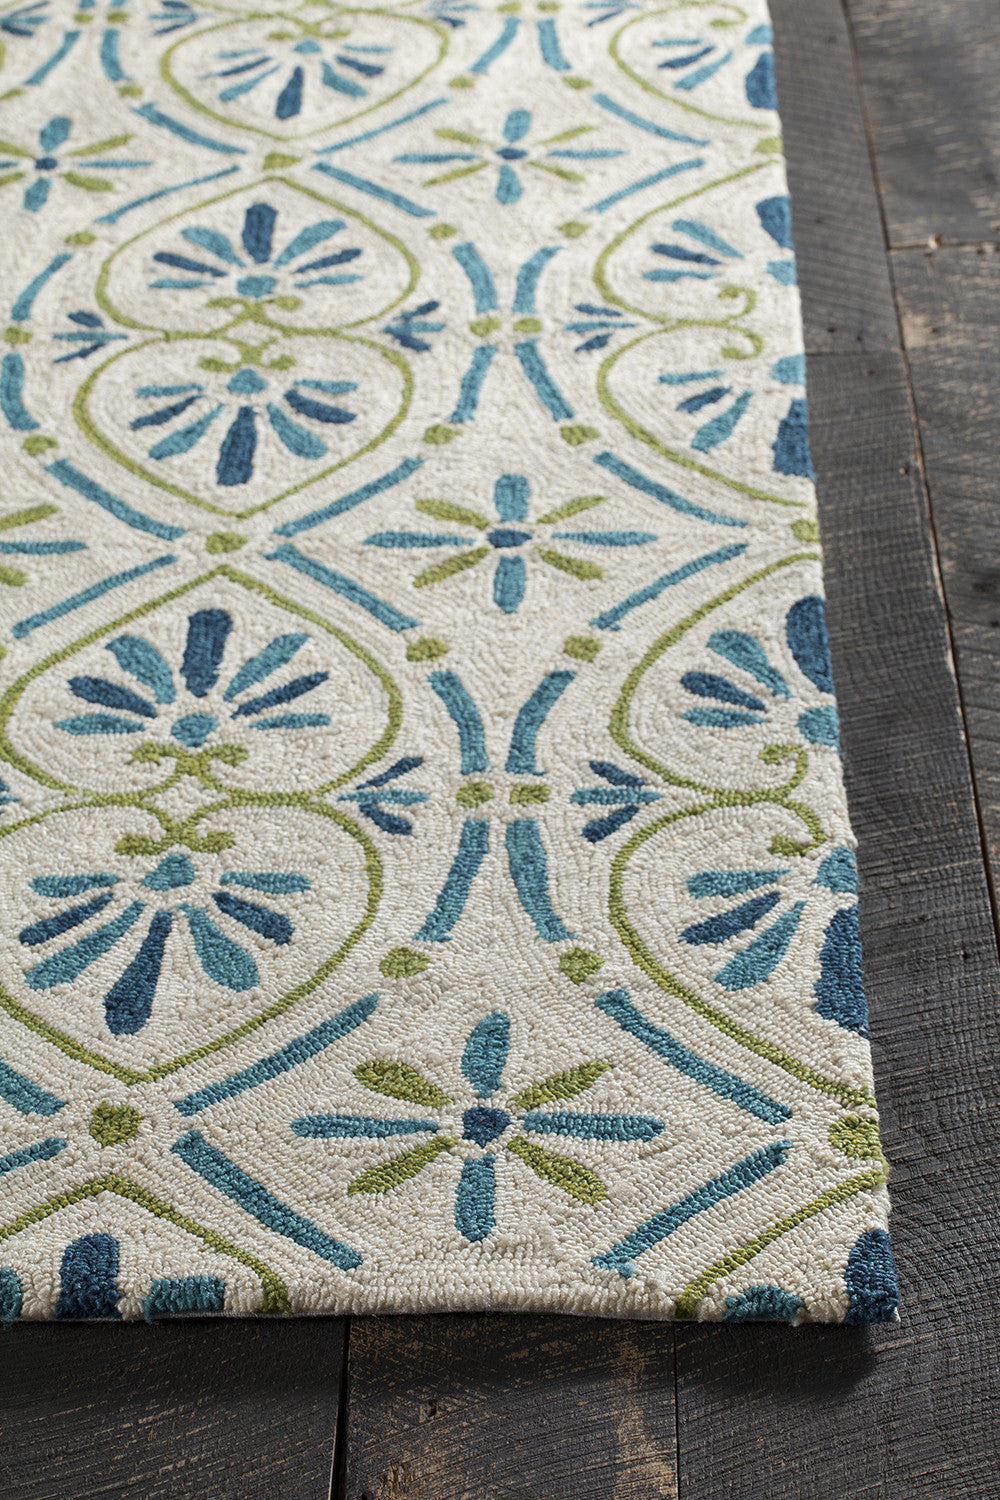 Terra Collection Hand Tufted Area Rug In Cream Blue Green Burke Decor